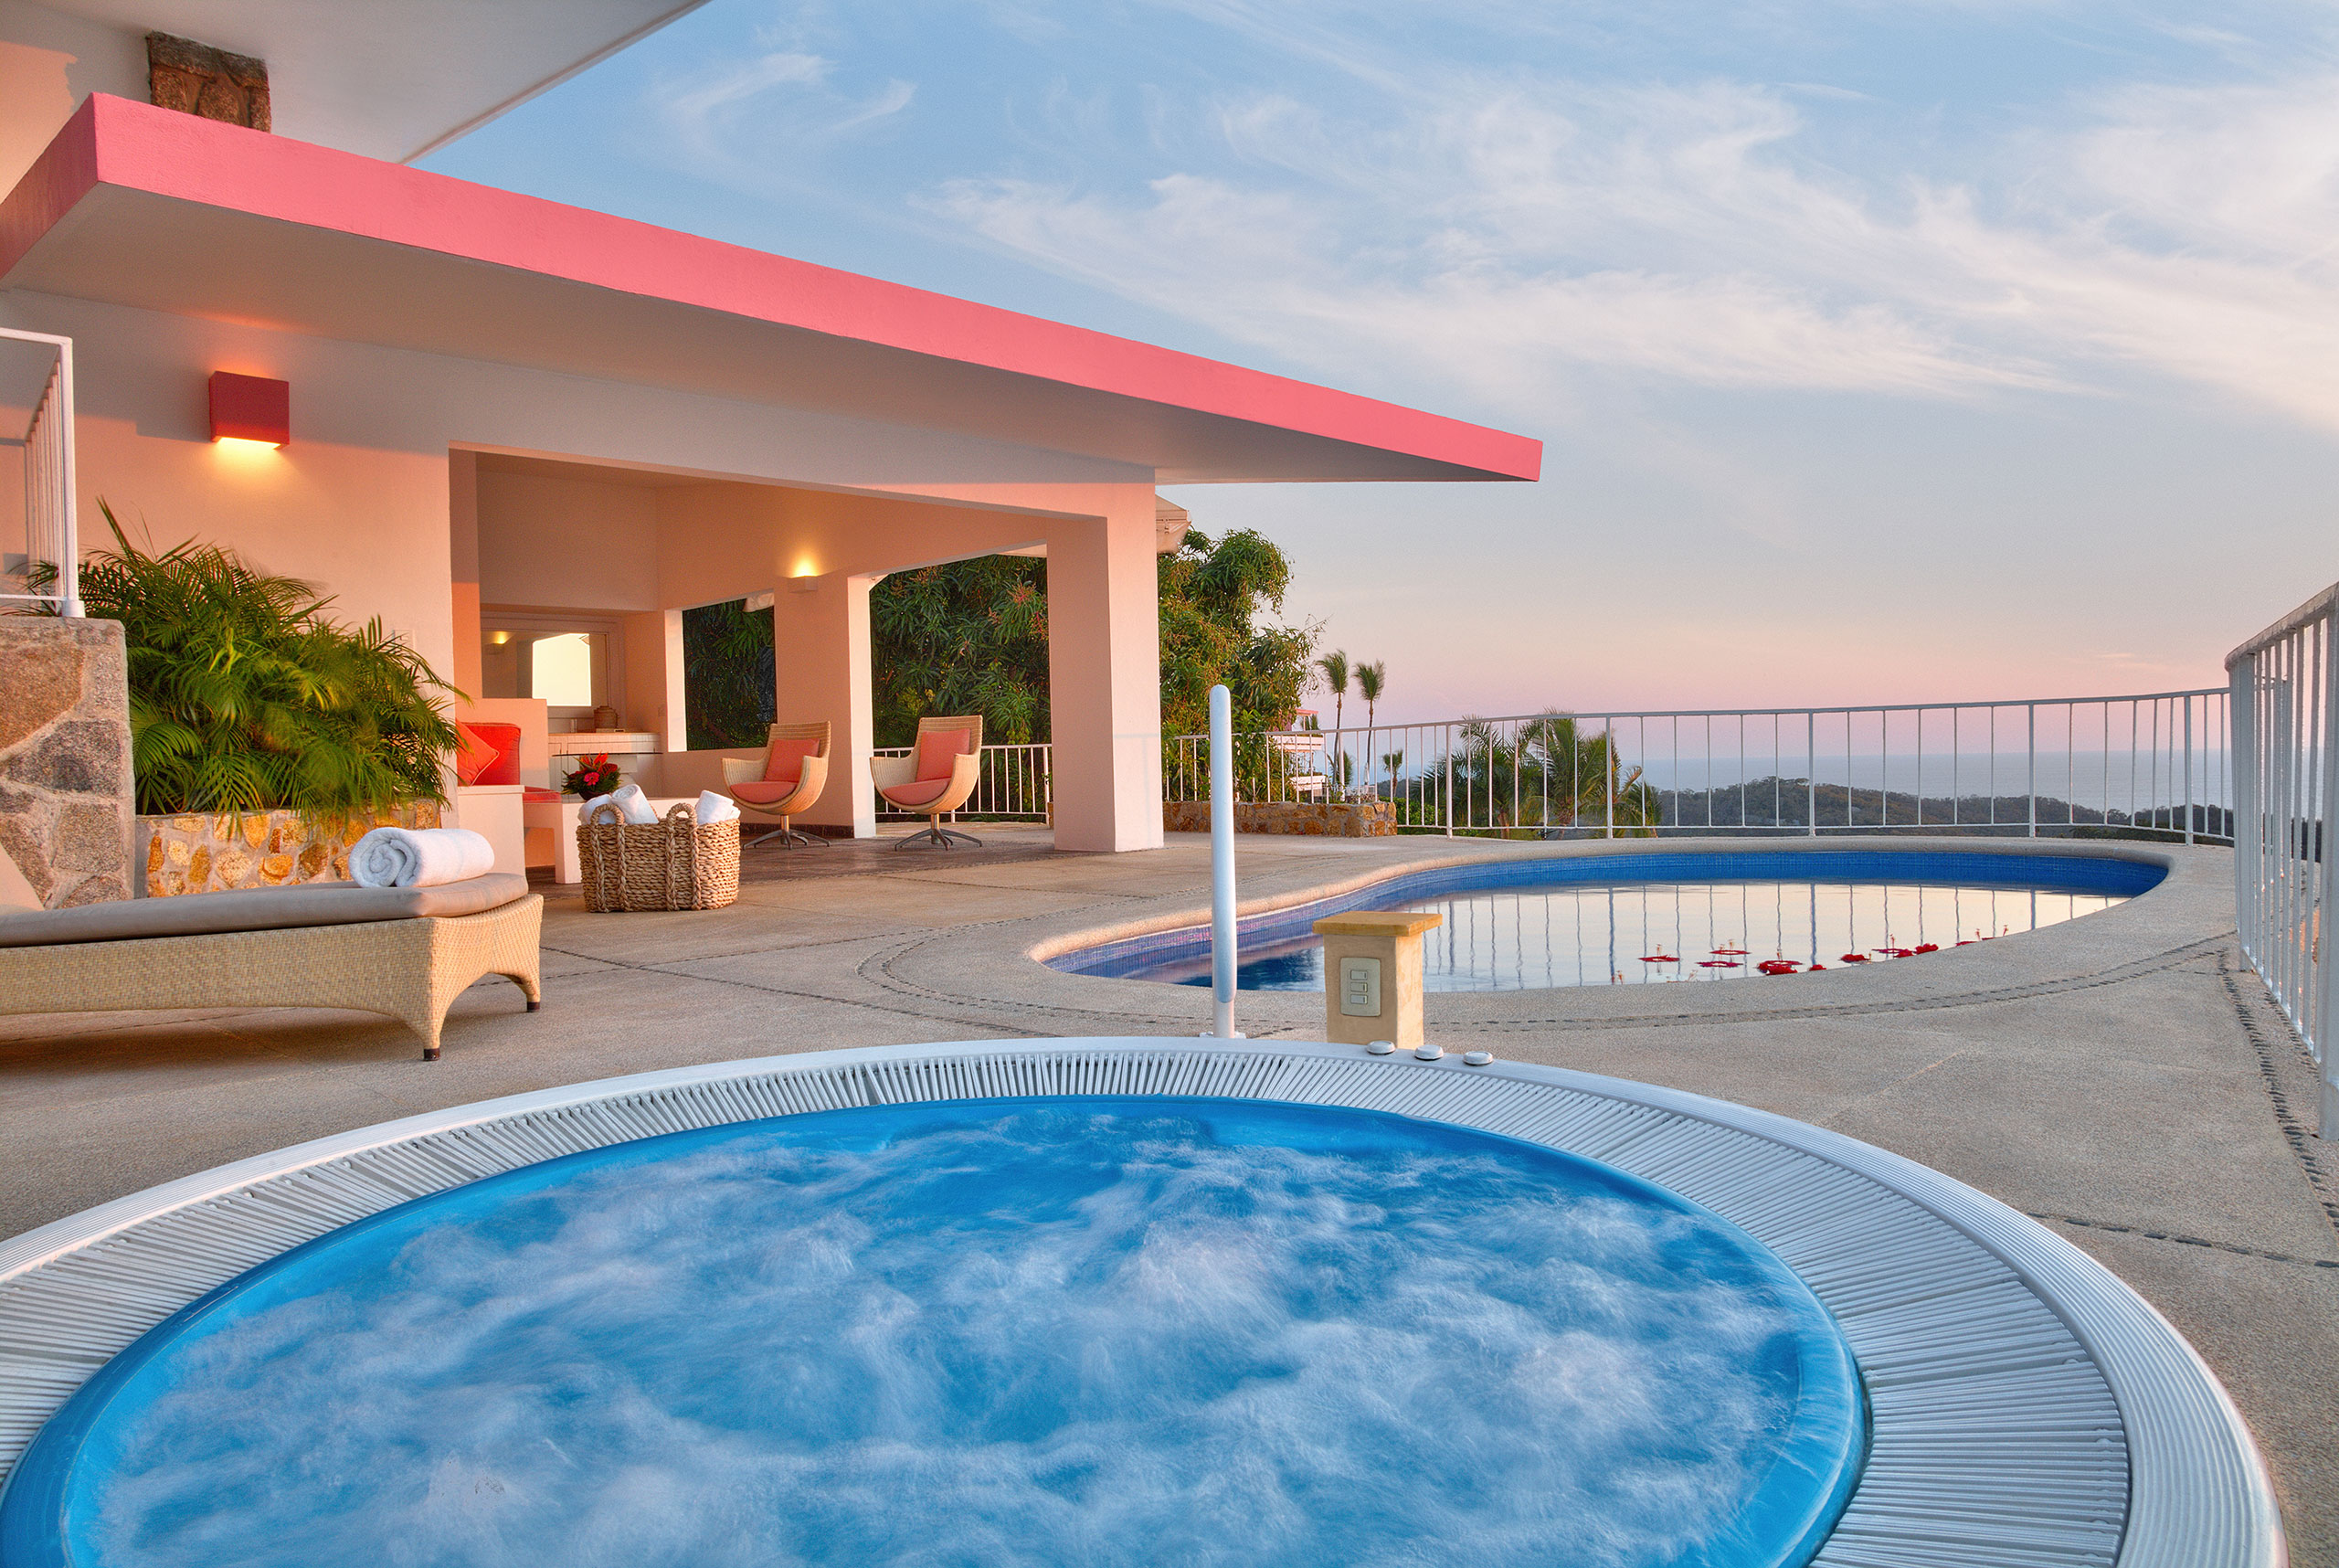 Hotel Las Brisas Acapulco Master Suite with Jacuzzi outdoor